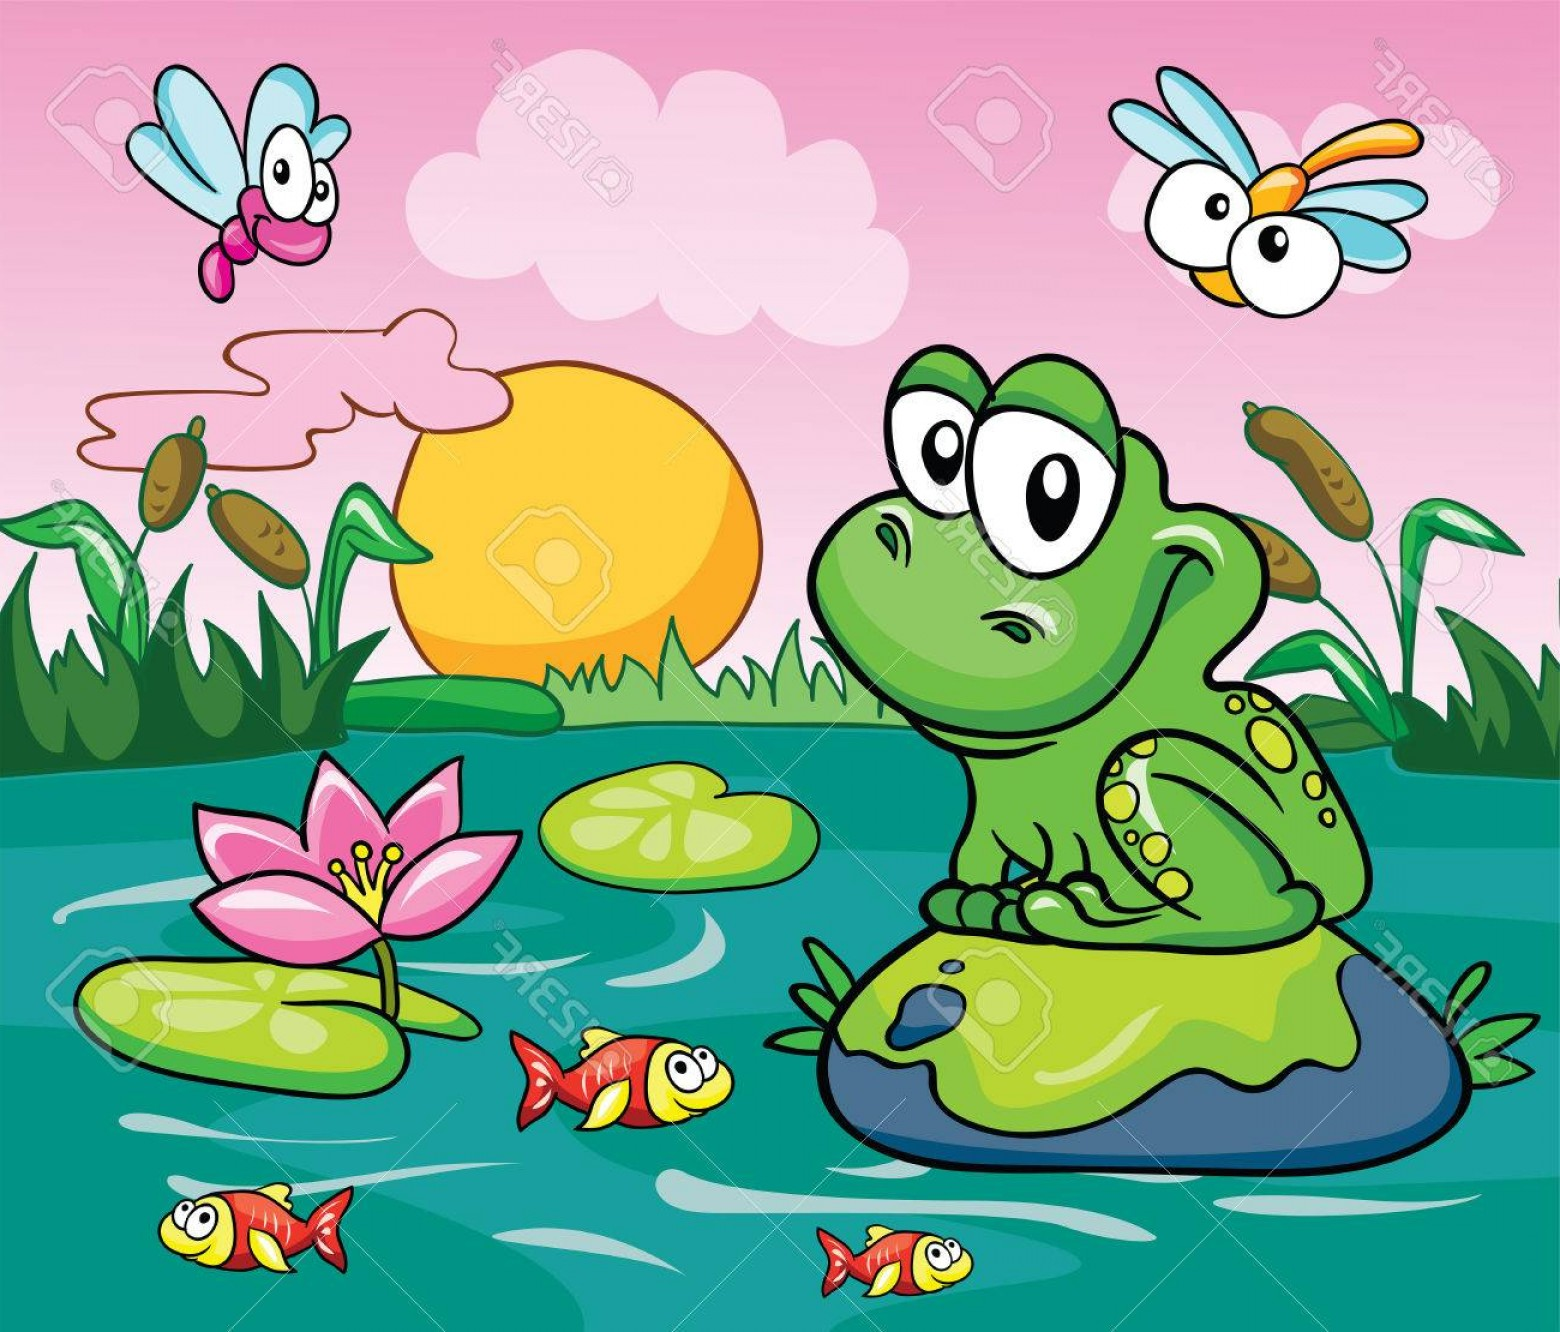 Swamp Vector Art: Photofrog In The Swamp Vector Illustration On A Colored Background